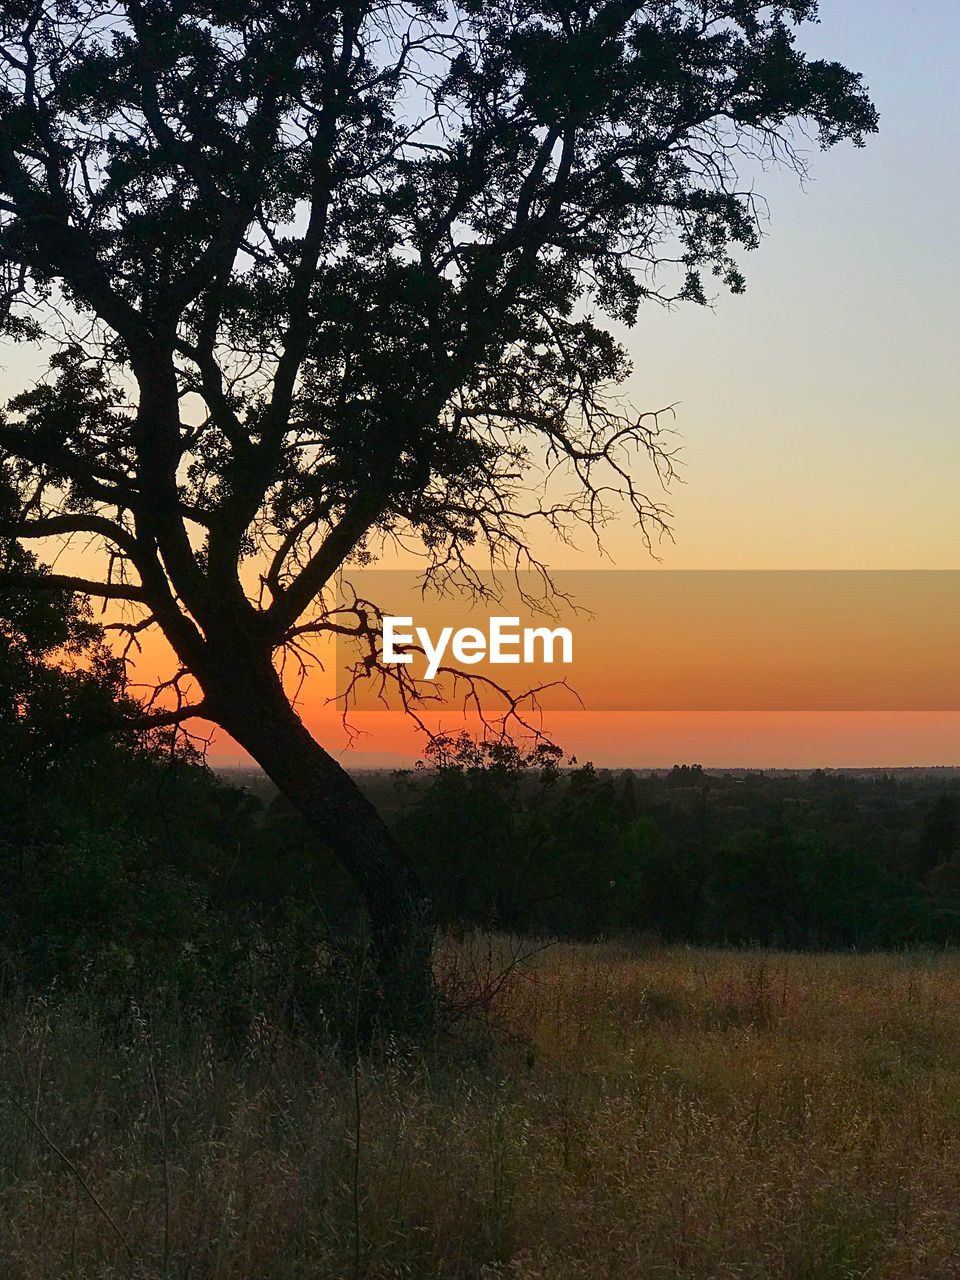 tree, sunset, sky, plant, tranquility, beauty in nature, tranquil scene, scenics - nature, silhouette, orange color, nature, landscape, no people, environment, land, growth, field, non-urban scene, branch, outdoors